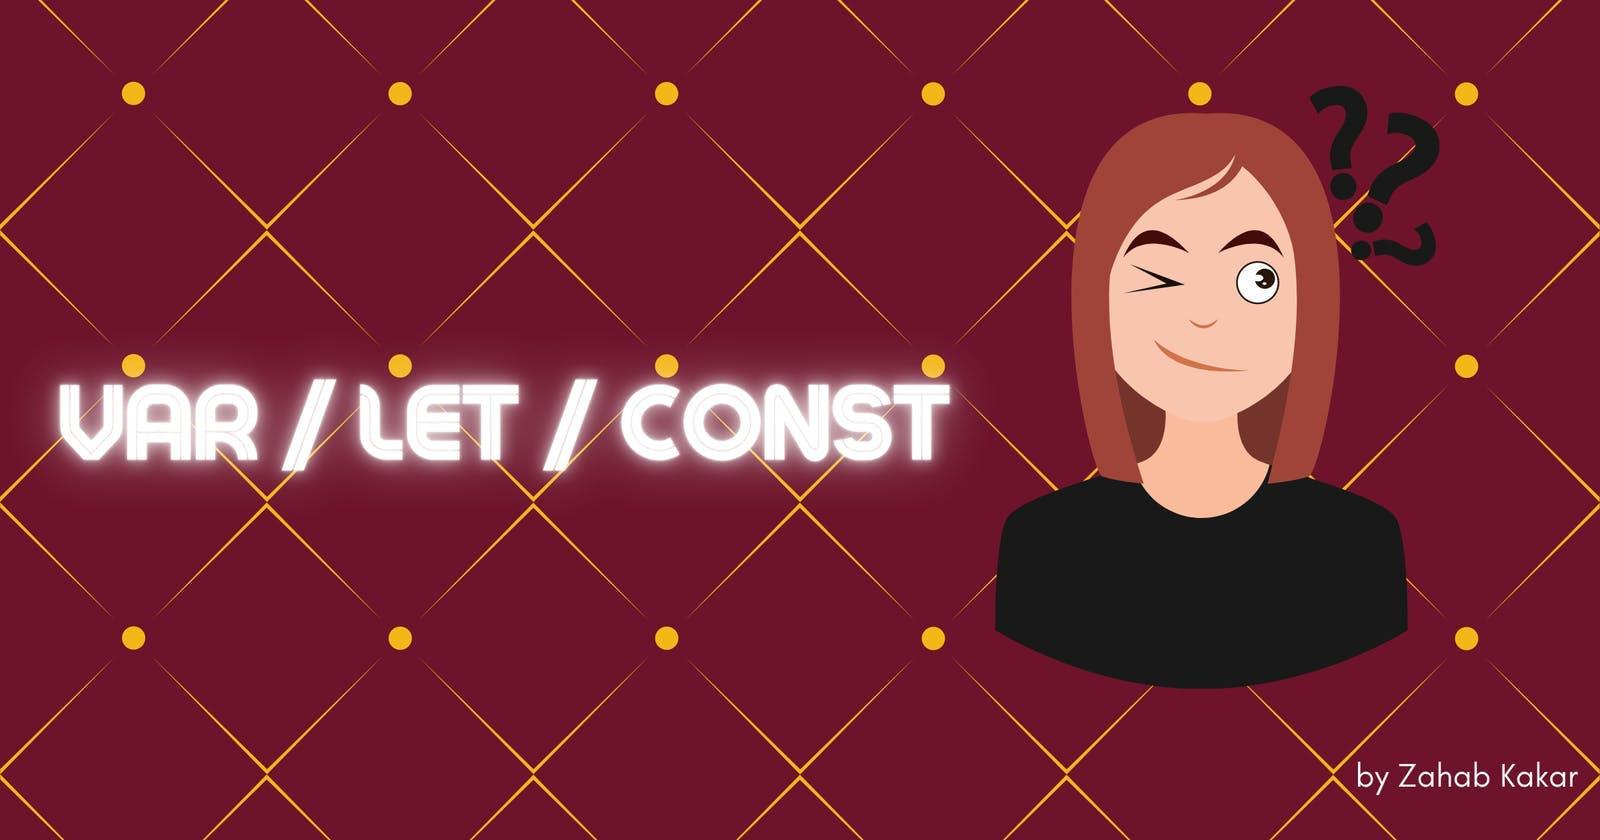 Const / Let / Var Which One Should You Use?